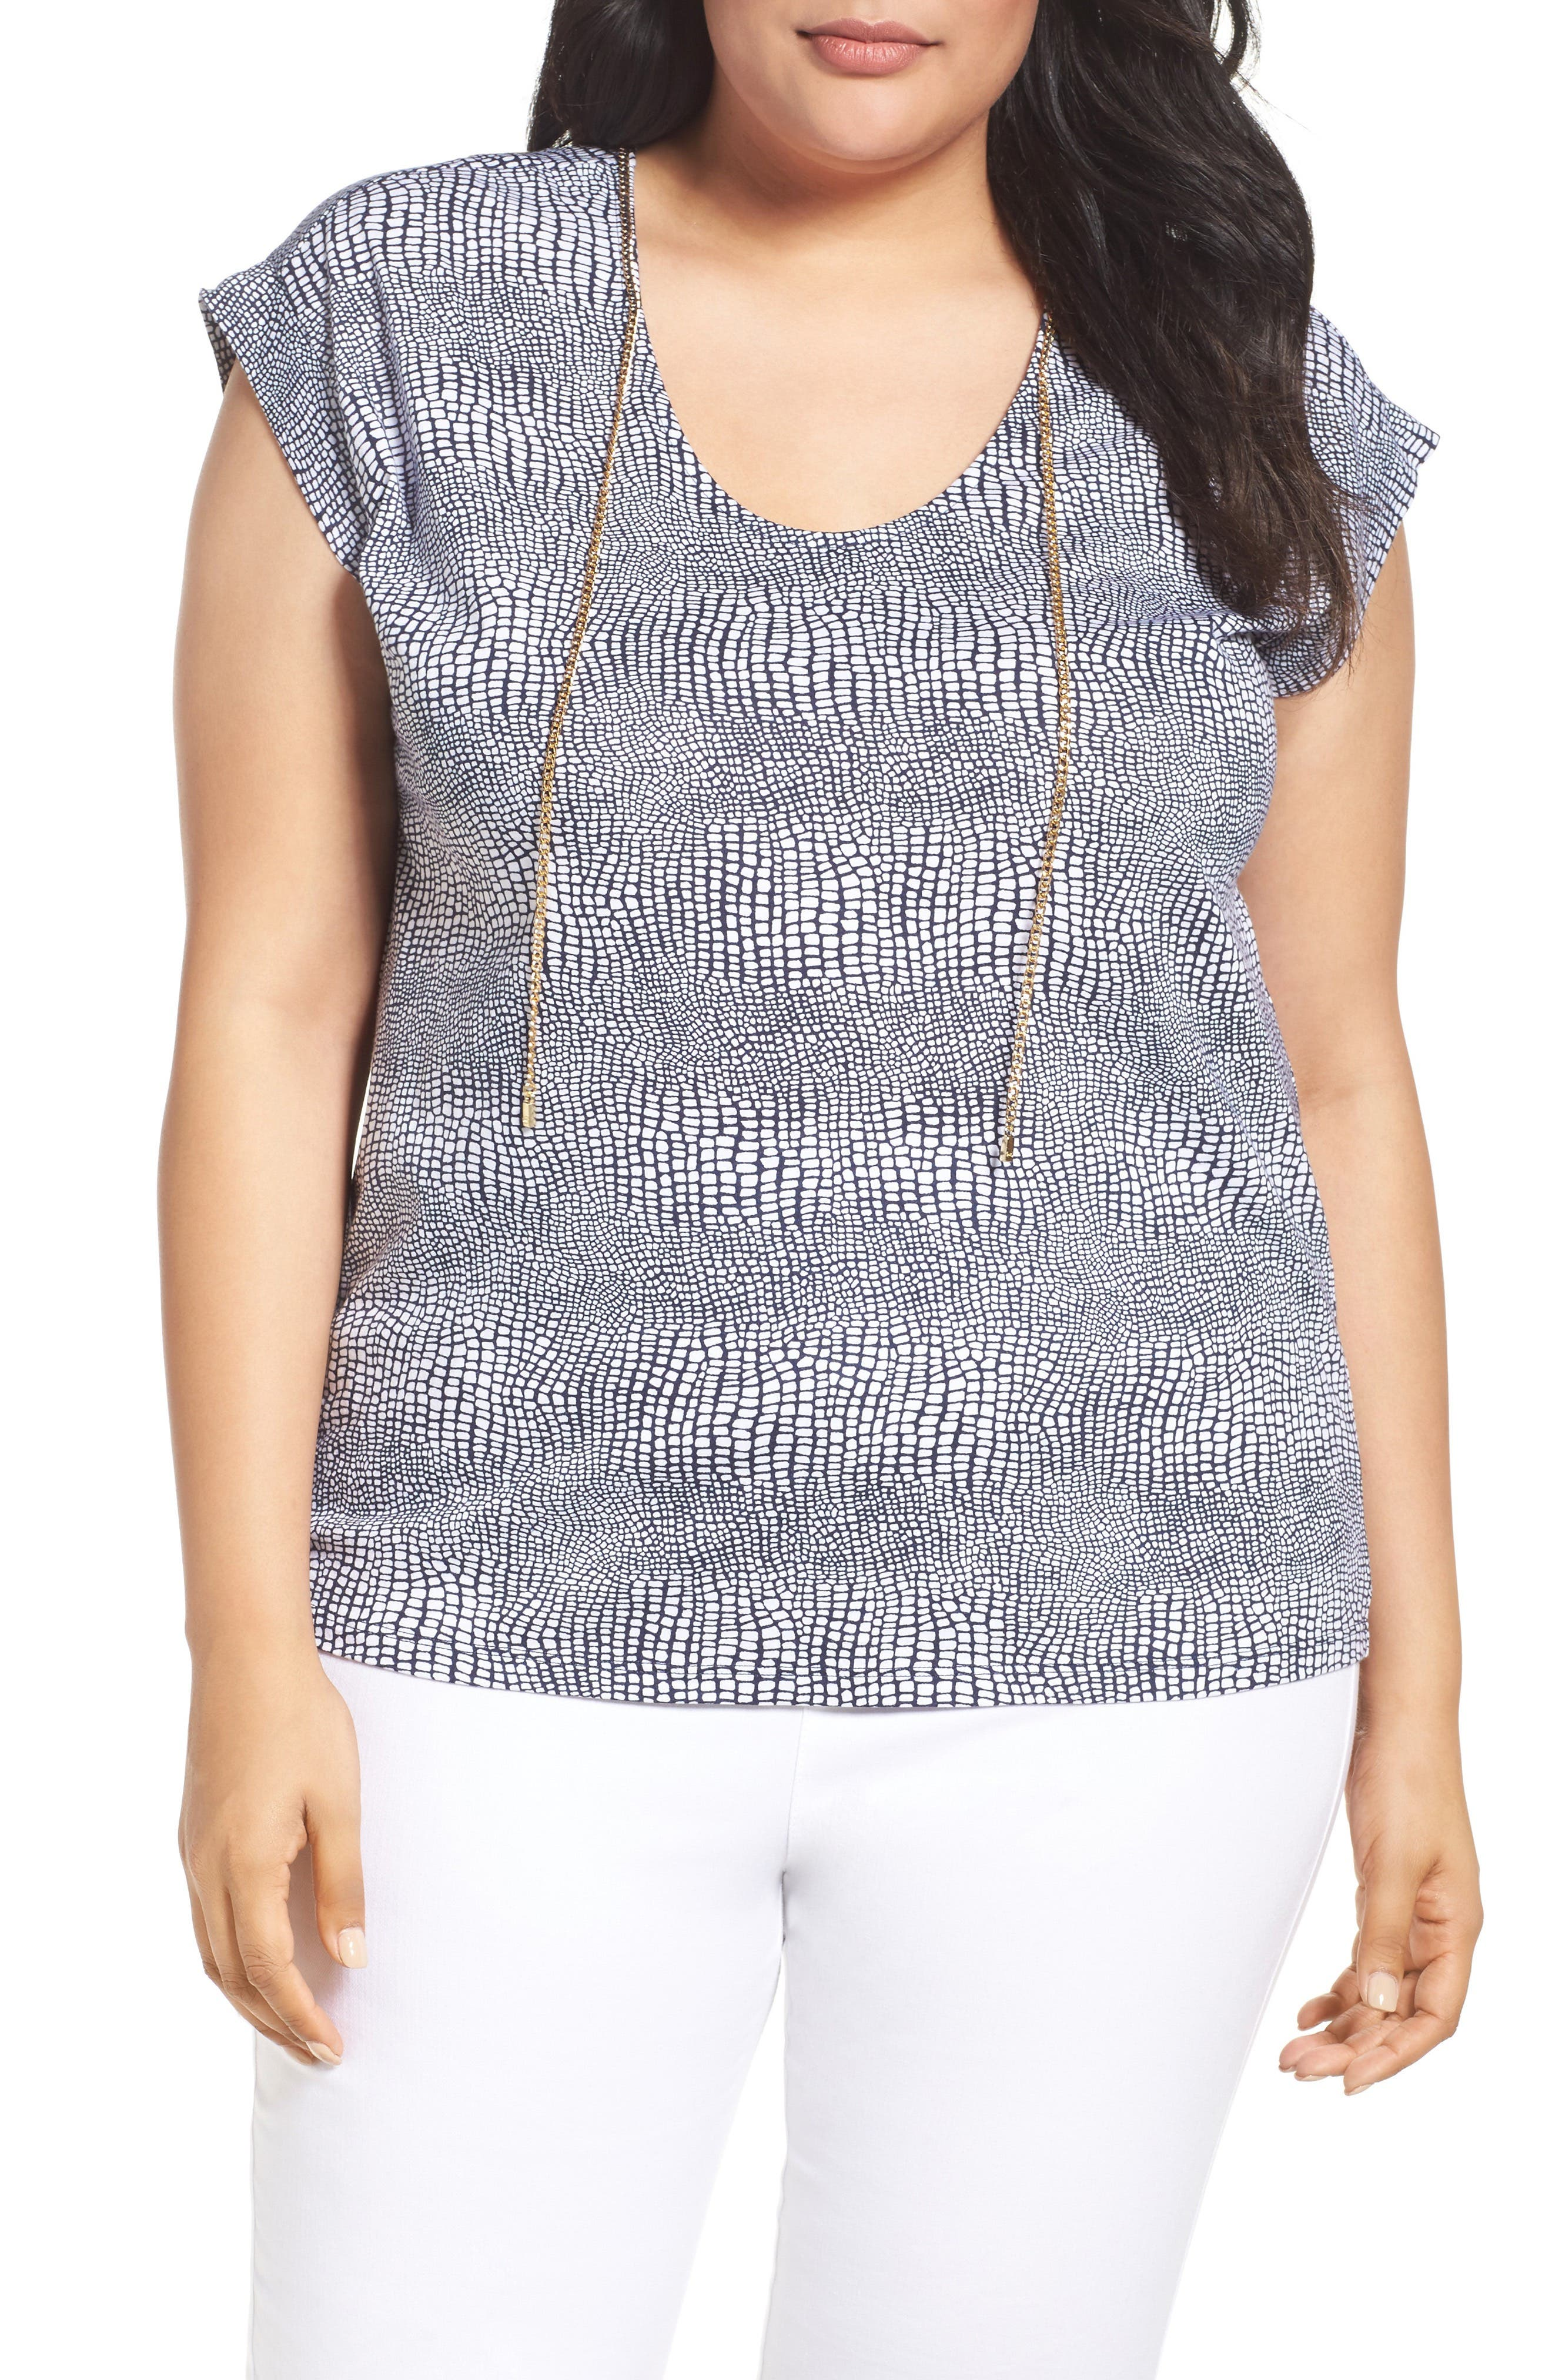 Alternate Image 1 Selected - MICHAEL Michael Kors Zephyr Chain Neck Top (Plus Size)